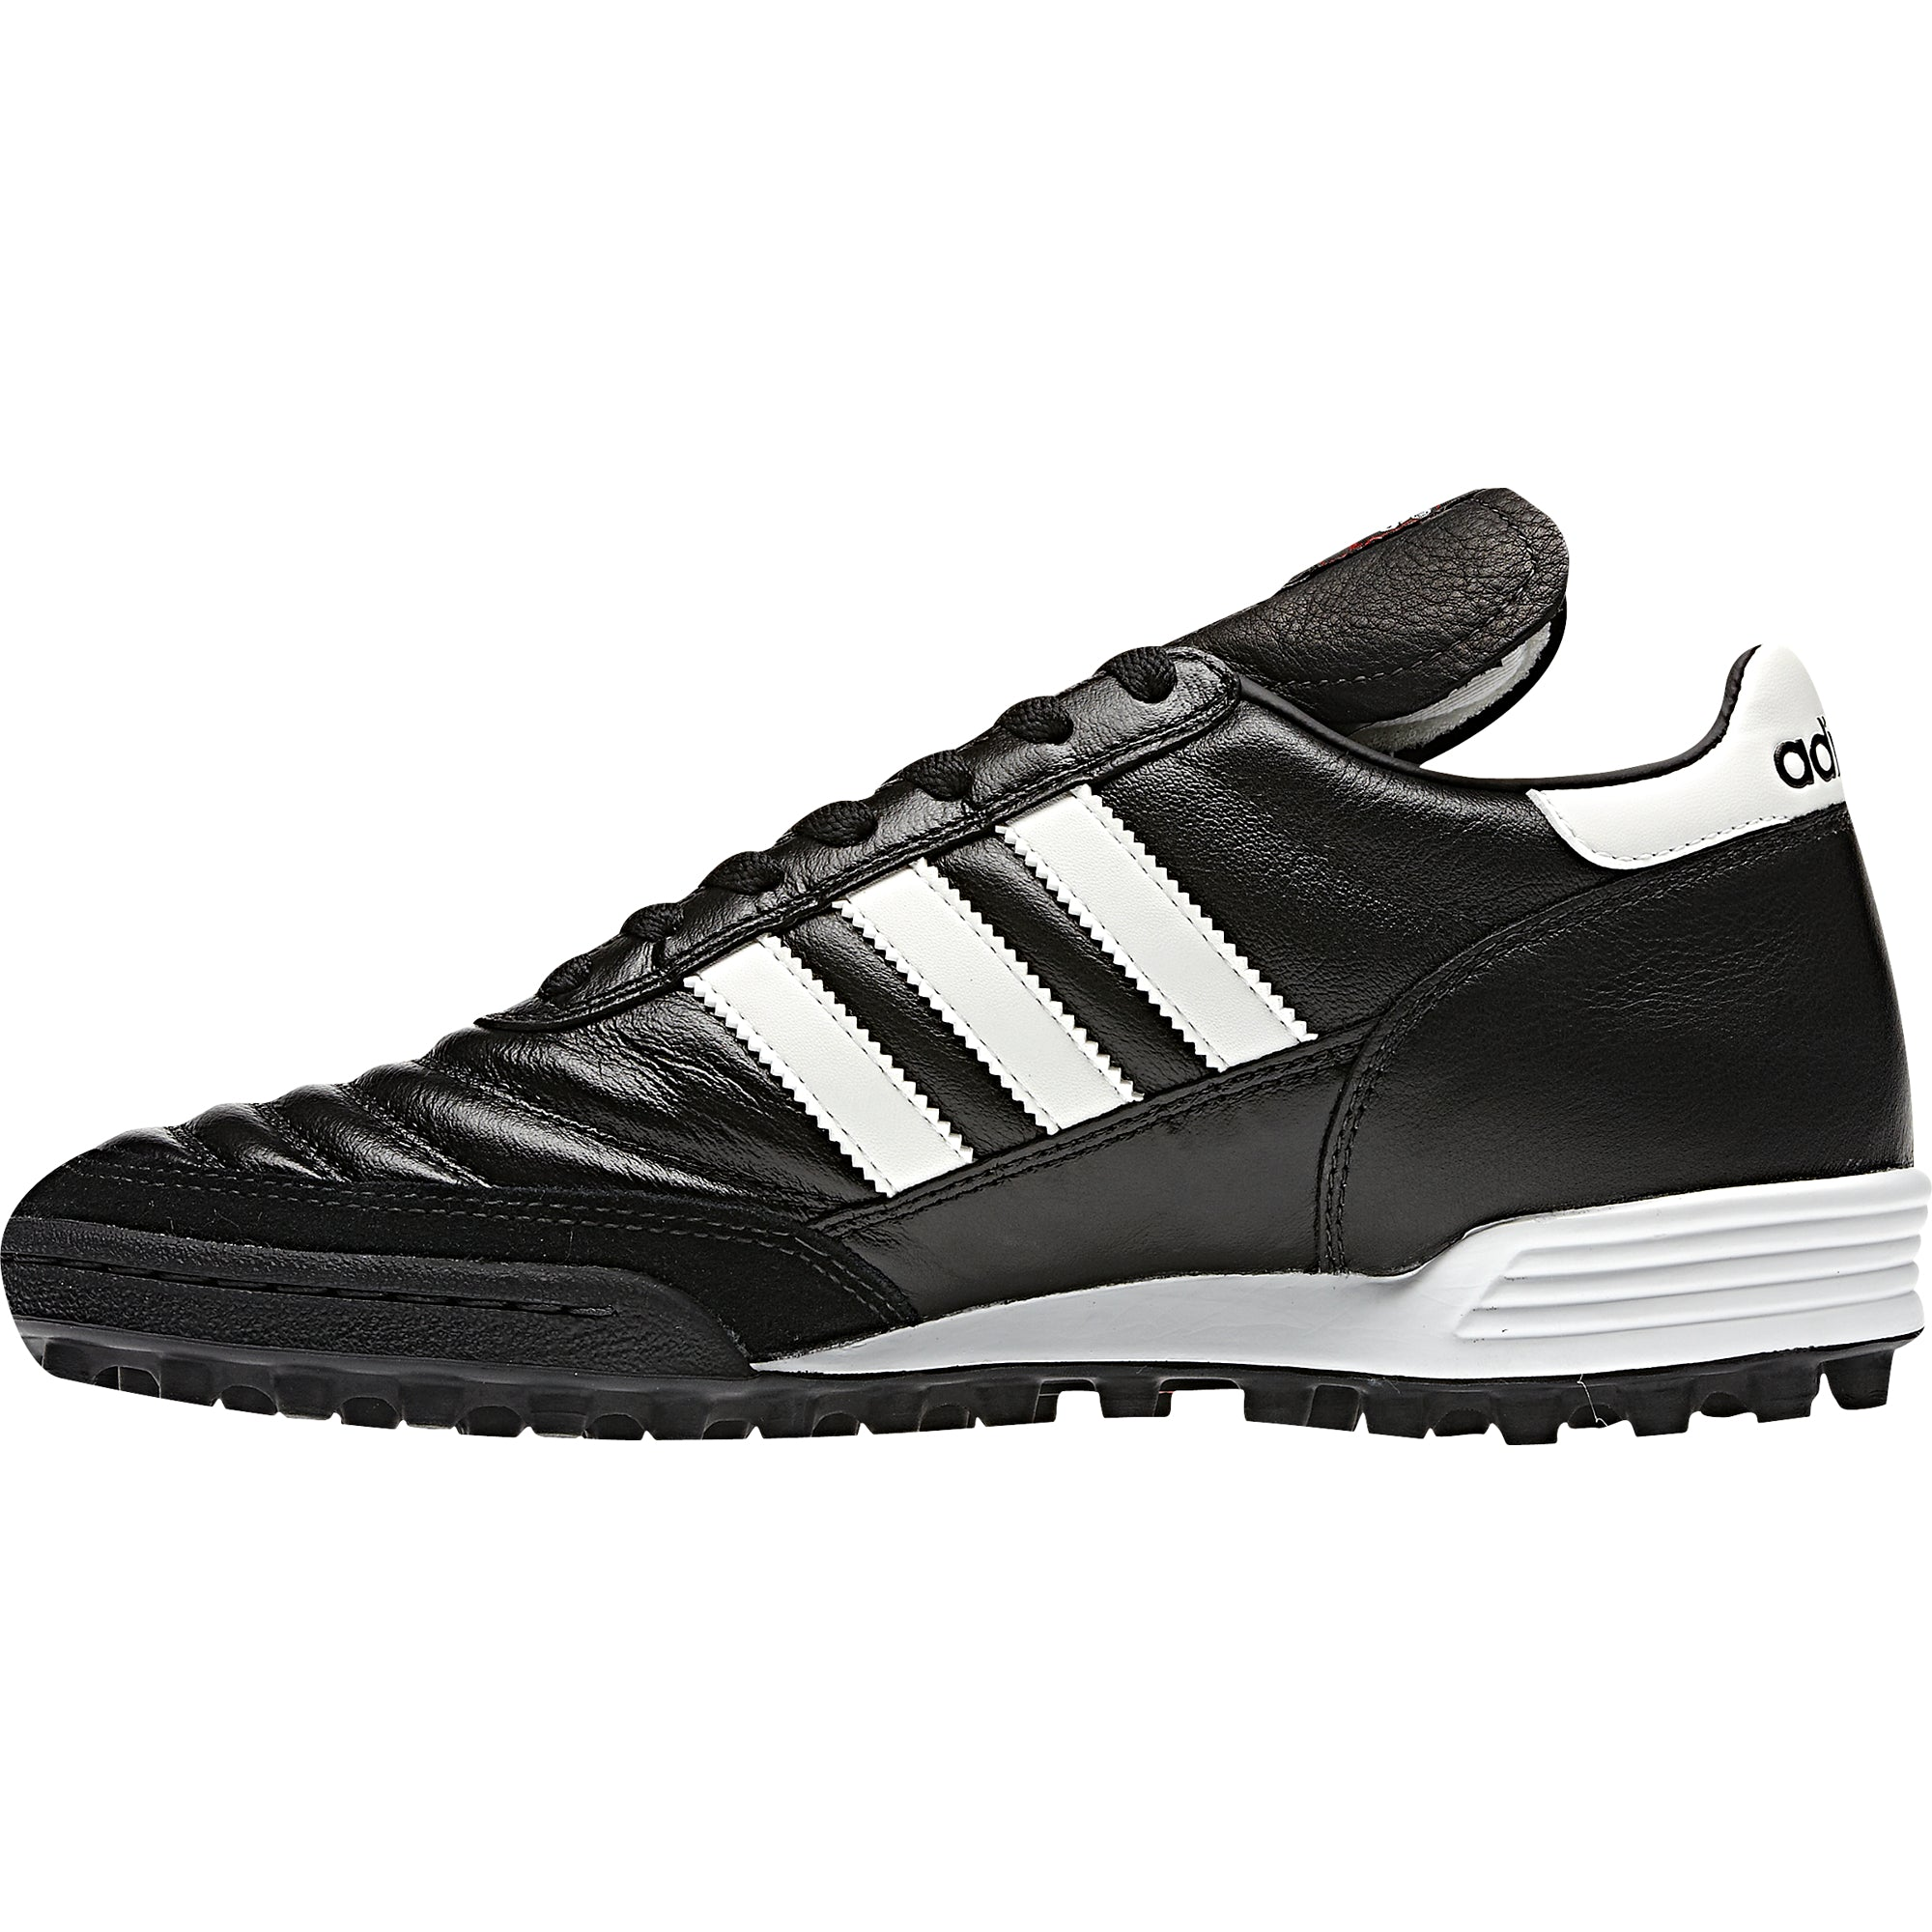 Adidas Mudial Team Turf Boots - Adult